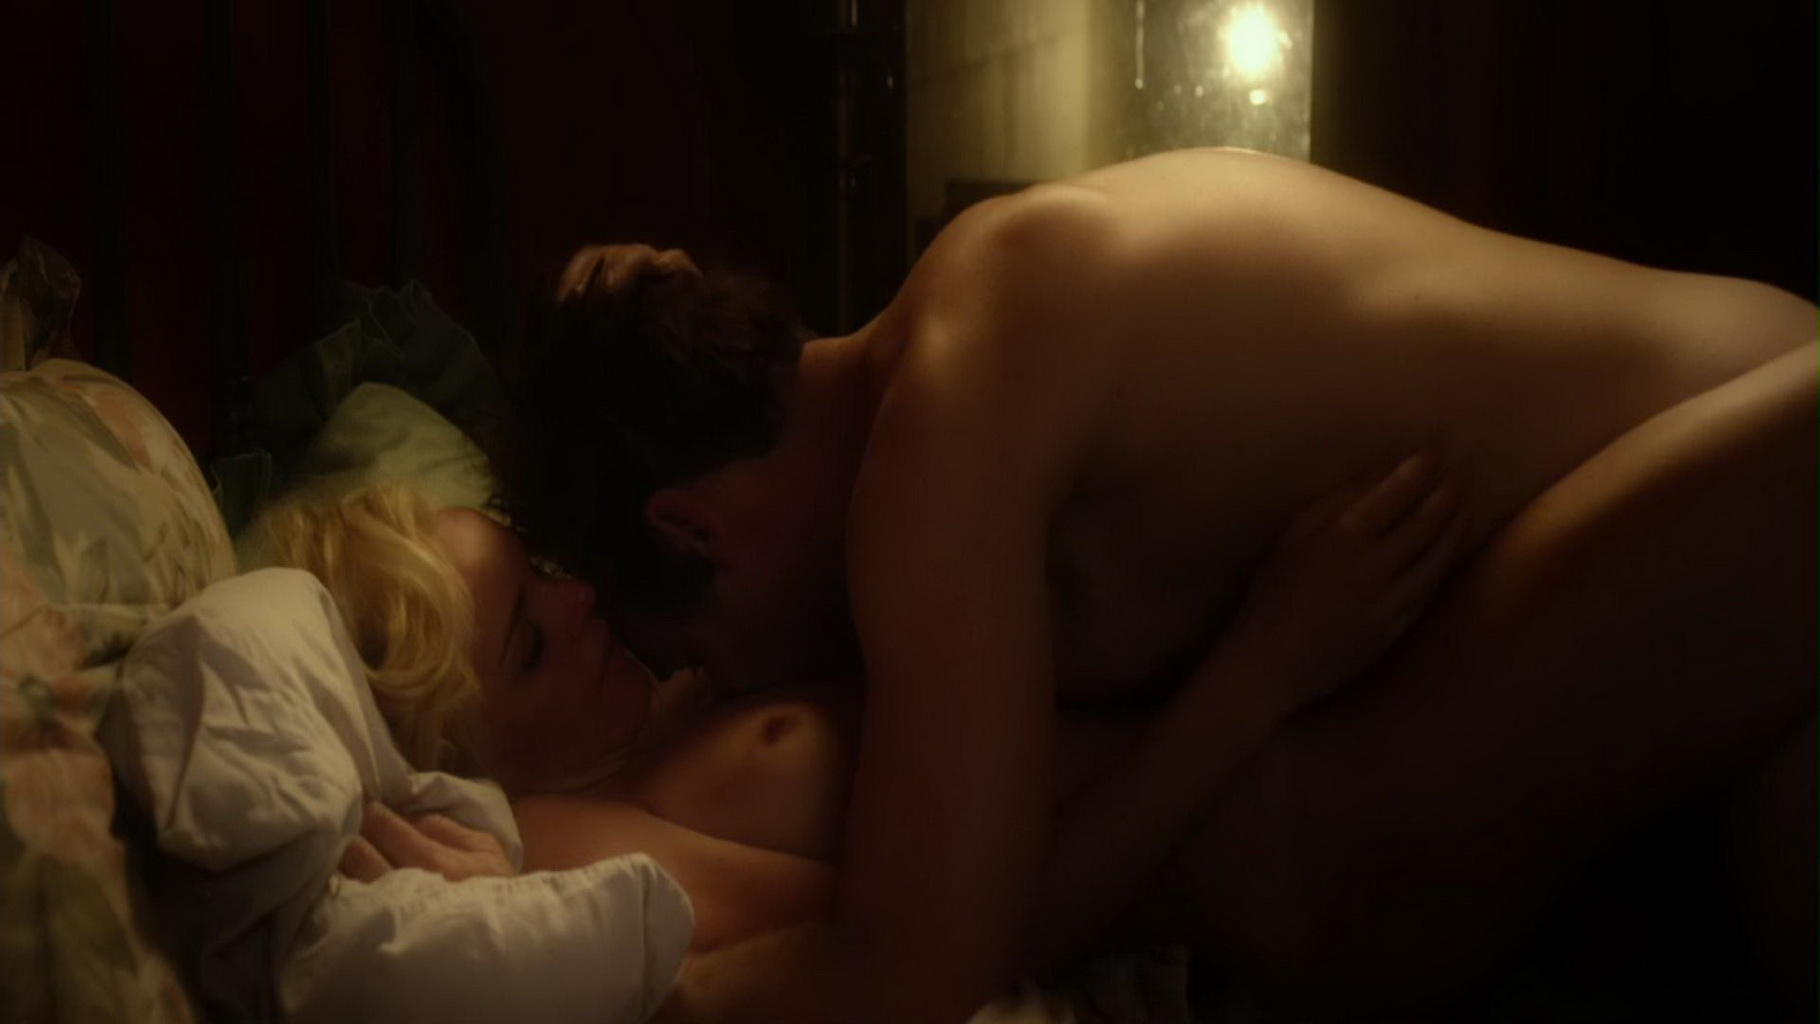 Kate bosworth 21 sex scene are also